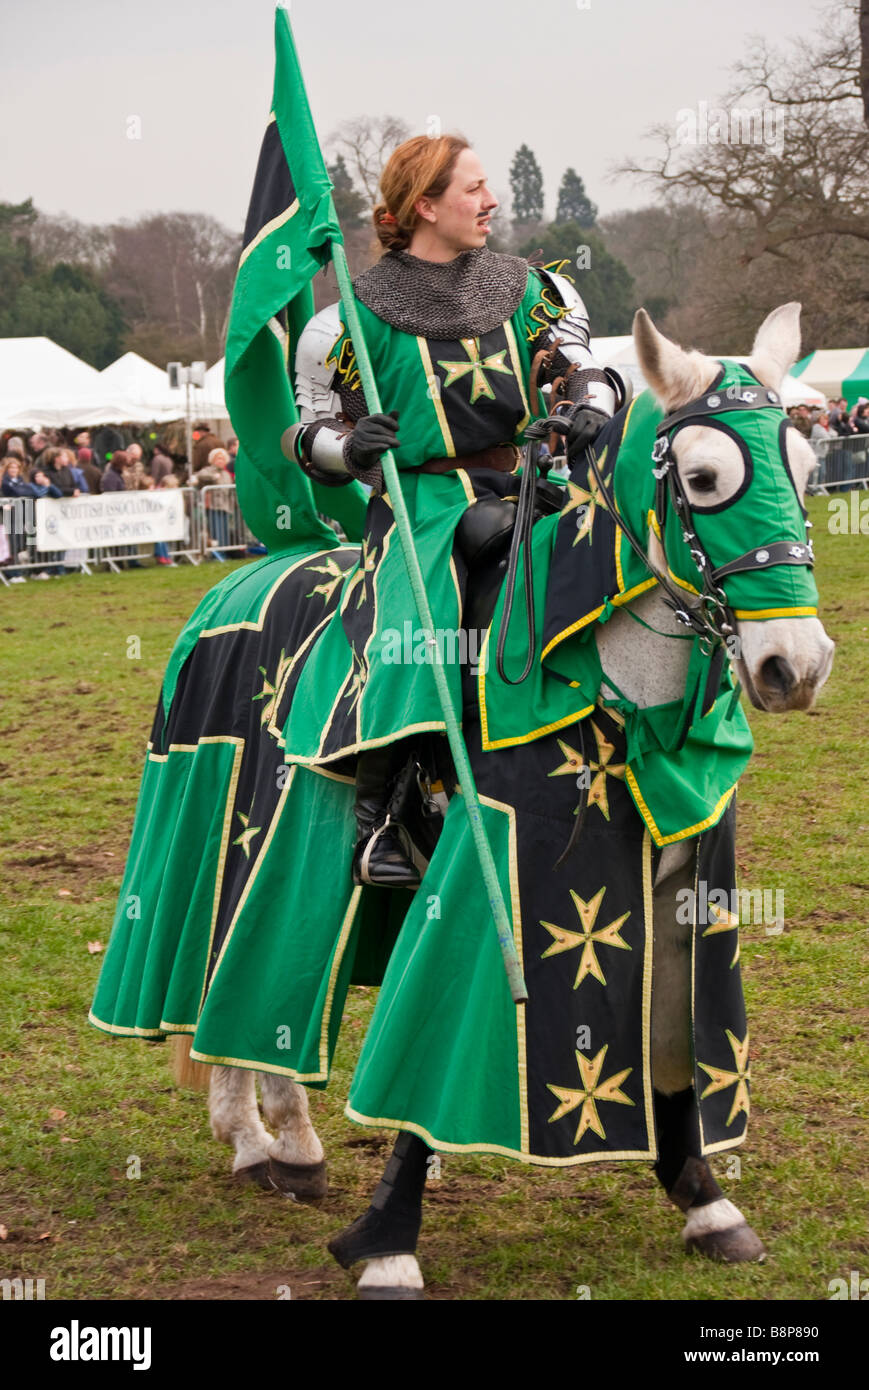 female knight on horseback at a jousting tournament  sc 1 st  Alamy & female knight on horseback at a jousting tournament Stock Photo ...